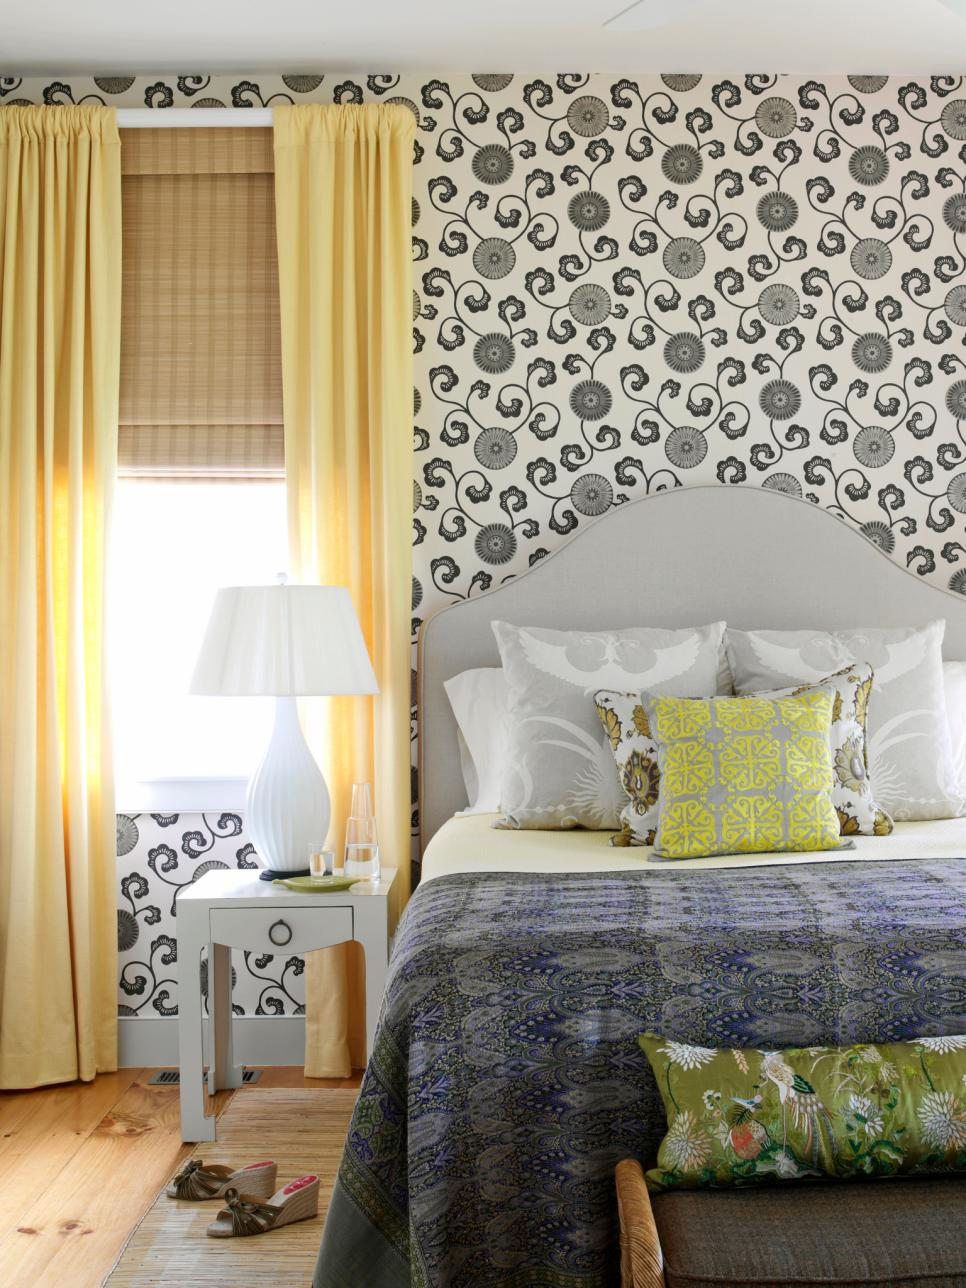 Alluring Wallpaper Motive close Bright Glass Window plus Chic Accessory